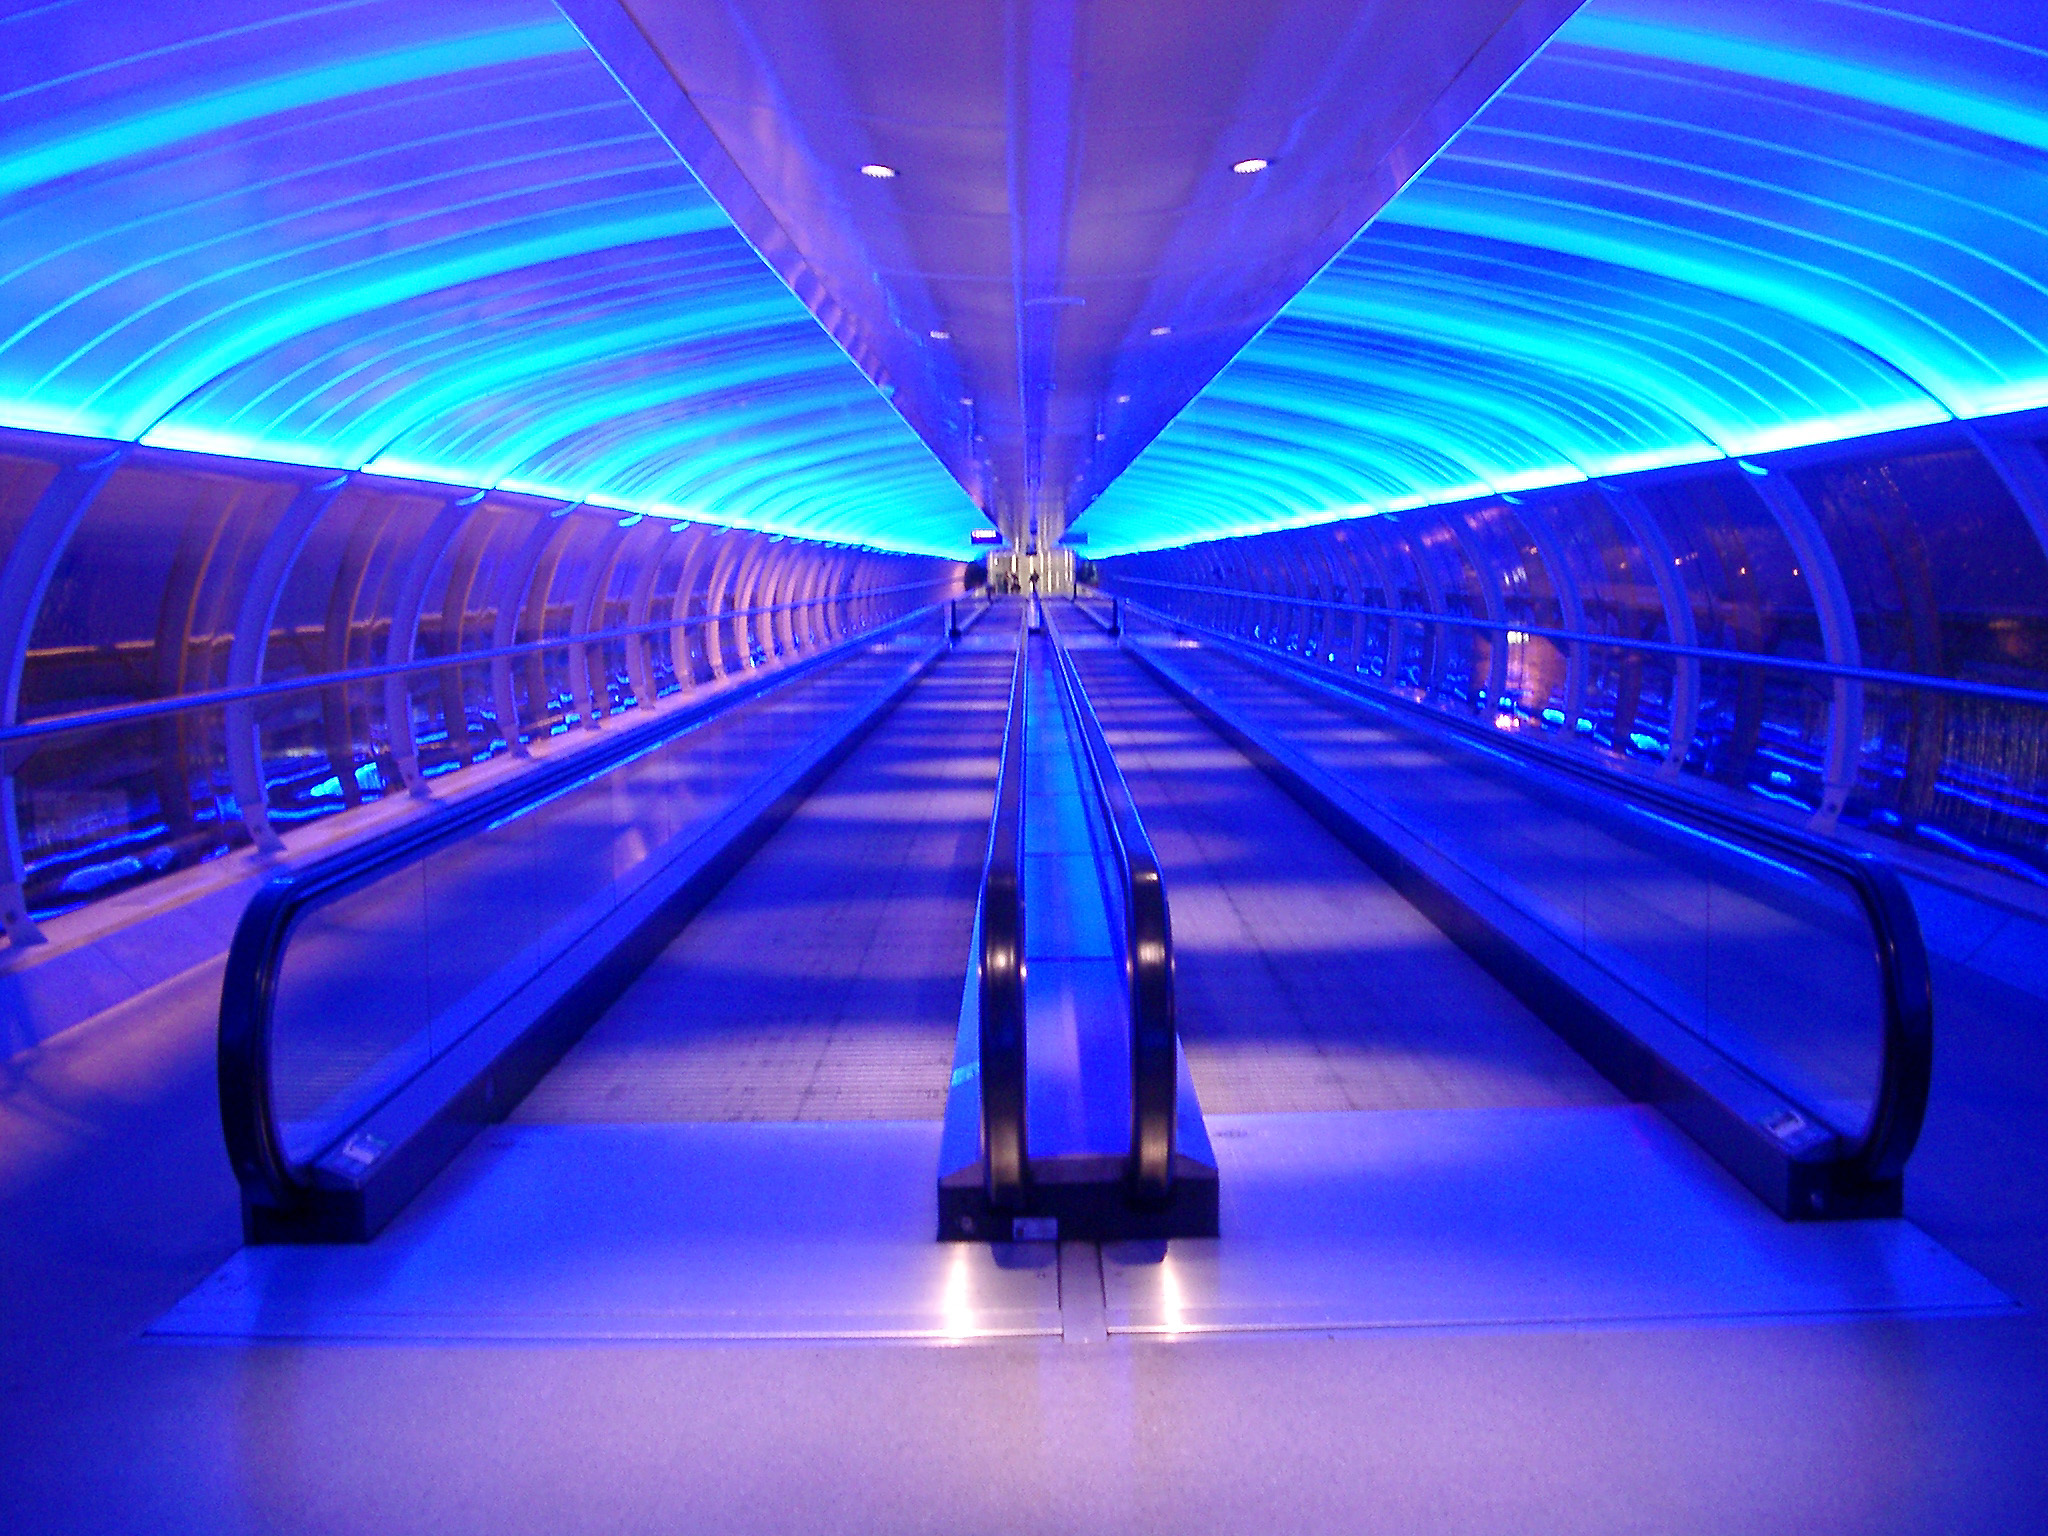 Interior of an airport walkway with two central moving travelators or passenger conveyor belts under a curved ceiling illuminated with blue lighting